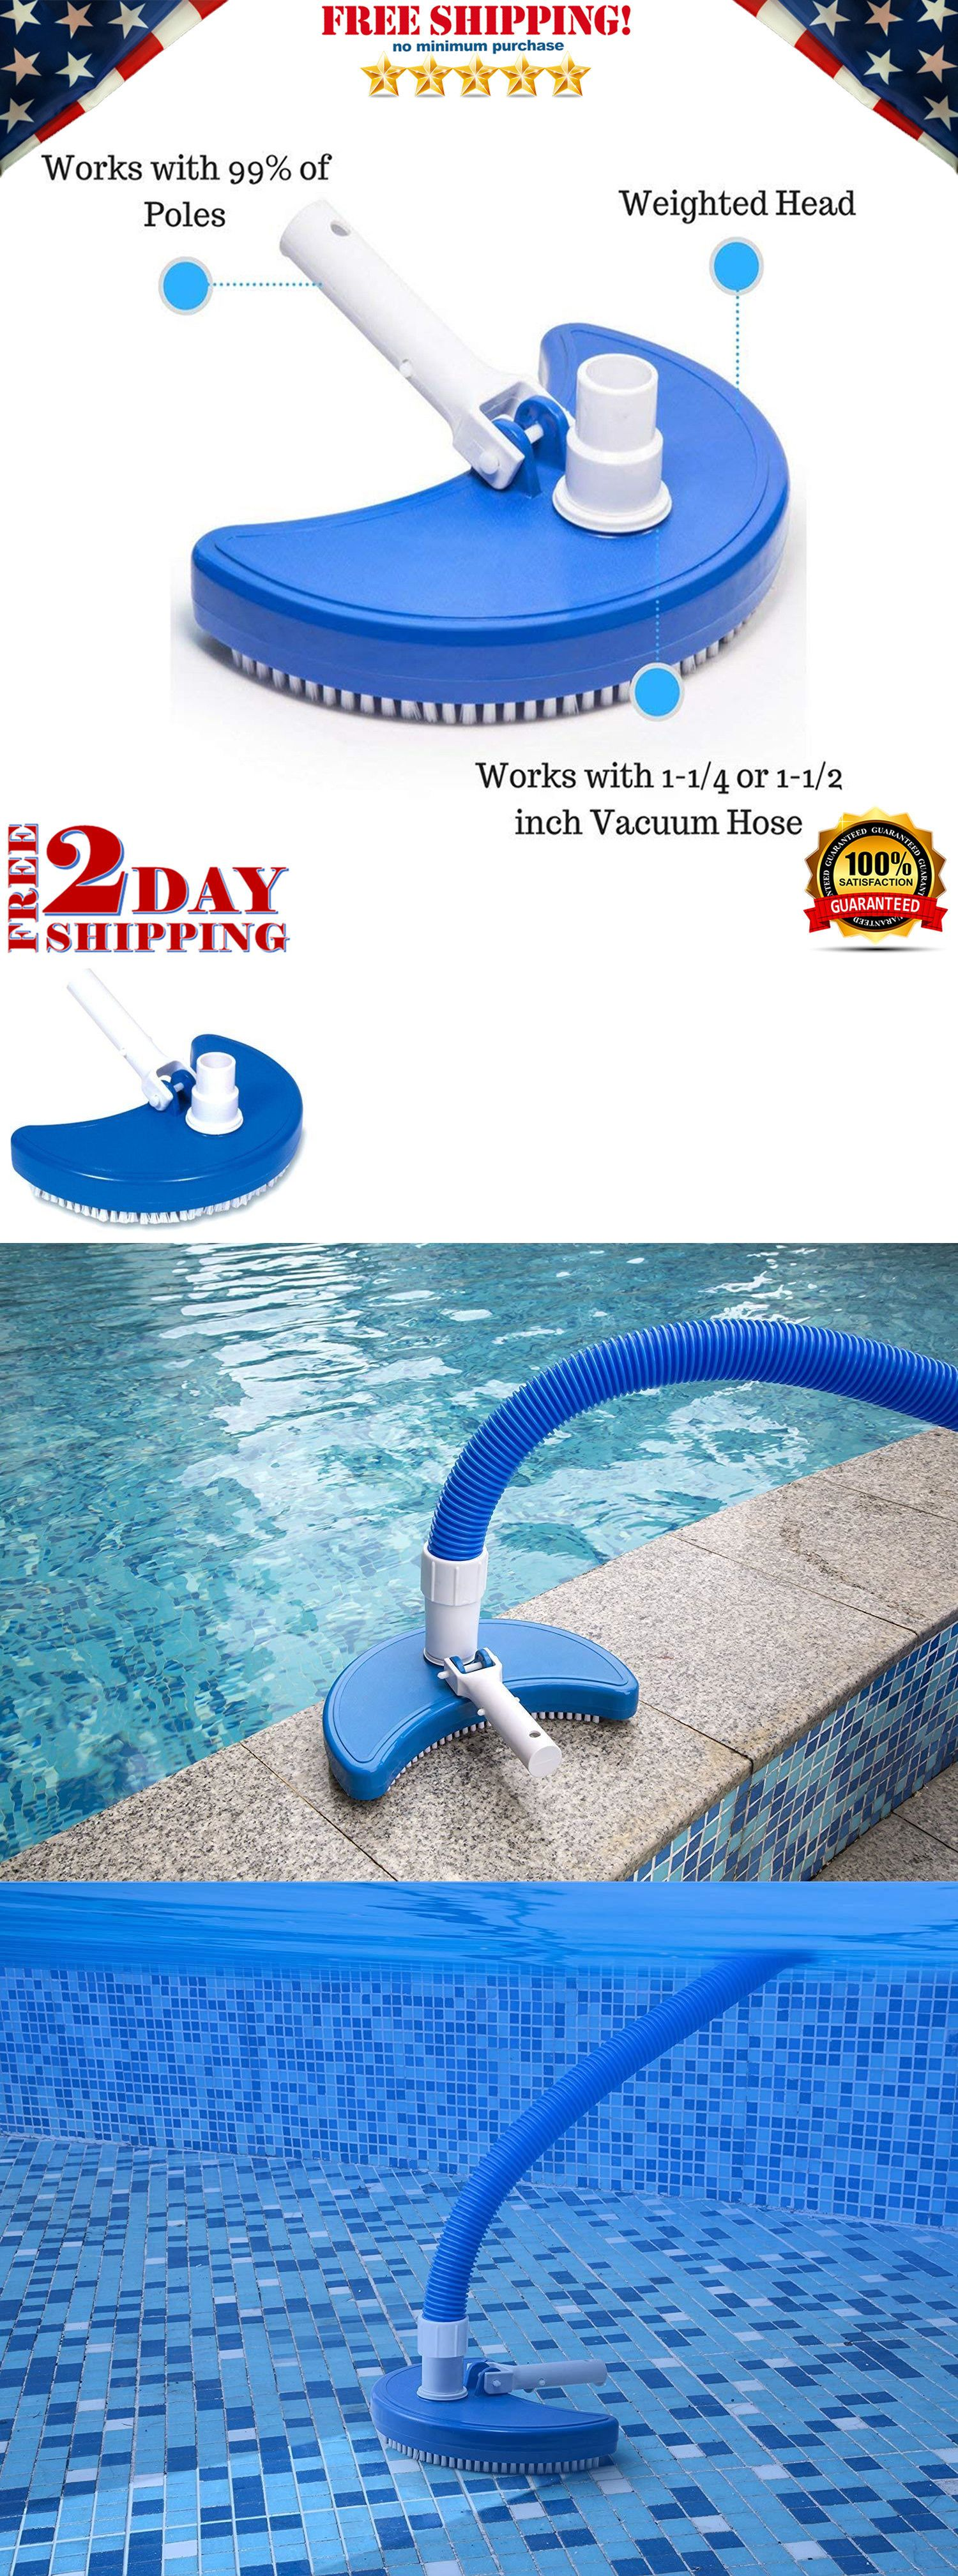 Pool Cleaner Attachments 181065 Pool Vacuum Head Cleaner Hose Inground Above Ground Brush Swimming Hydro Tools Buy It Now Pool Vacuum Pool Cleaning Vacuums